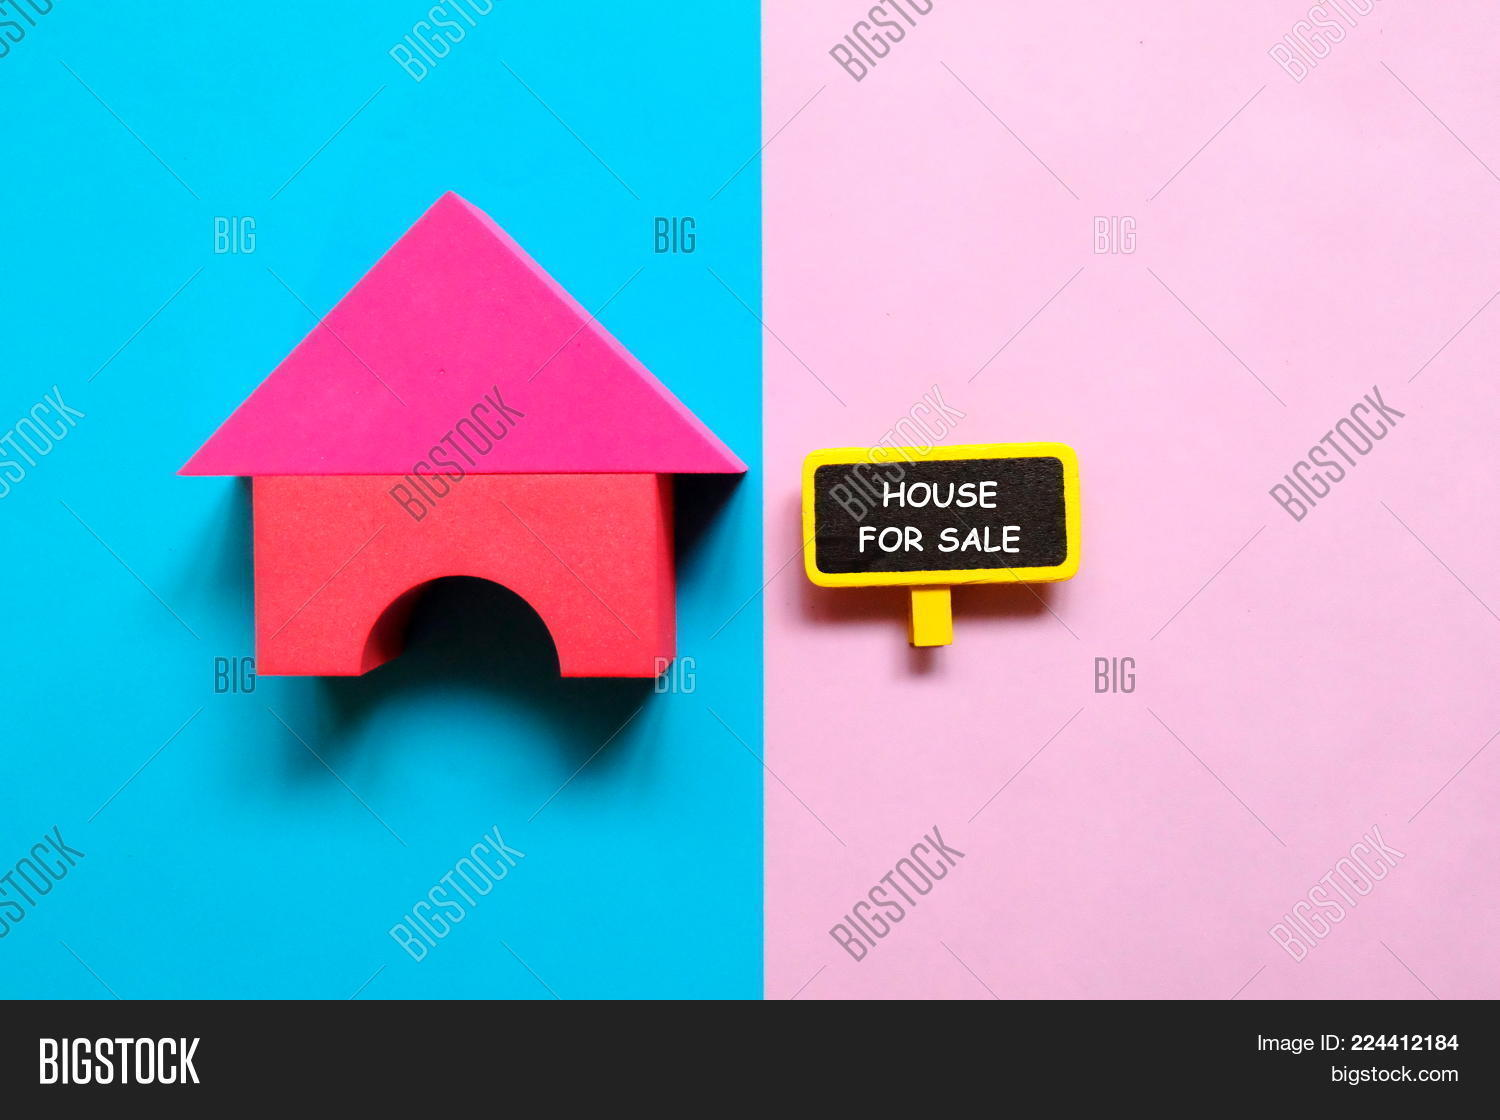 Real estate top view of house powerpoint template real estate top p toneelgroepblik Image collections